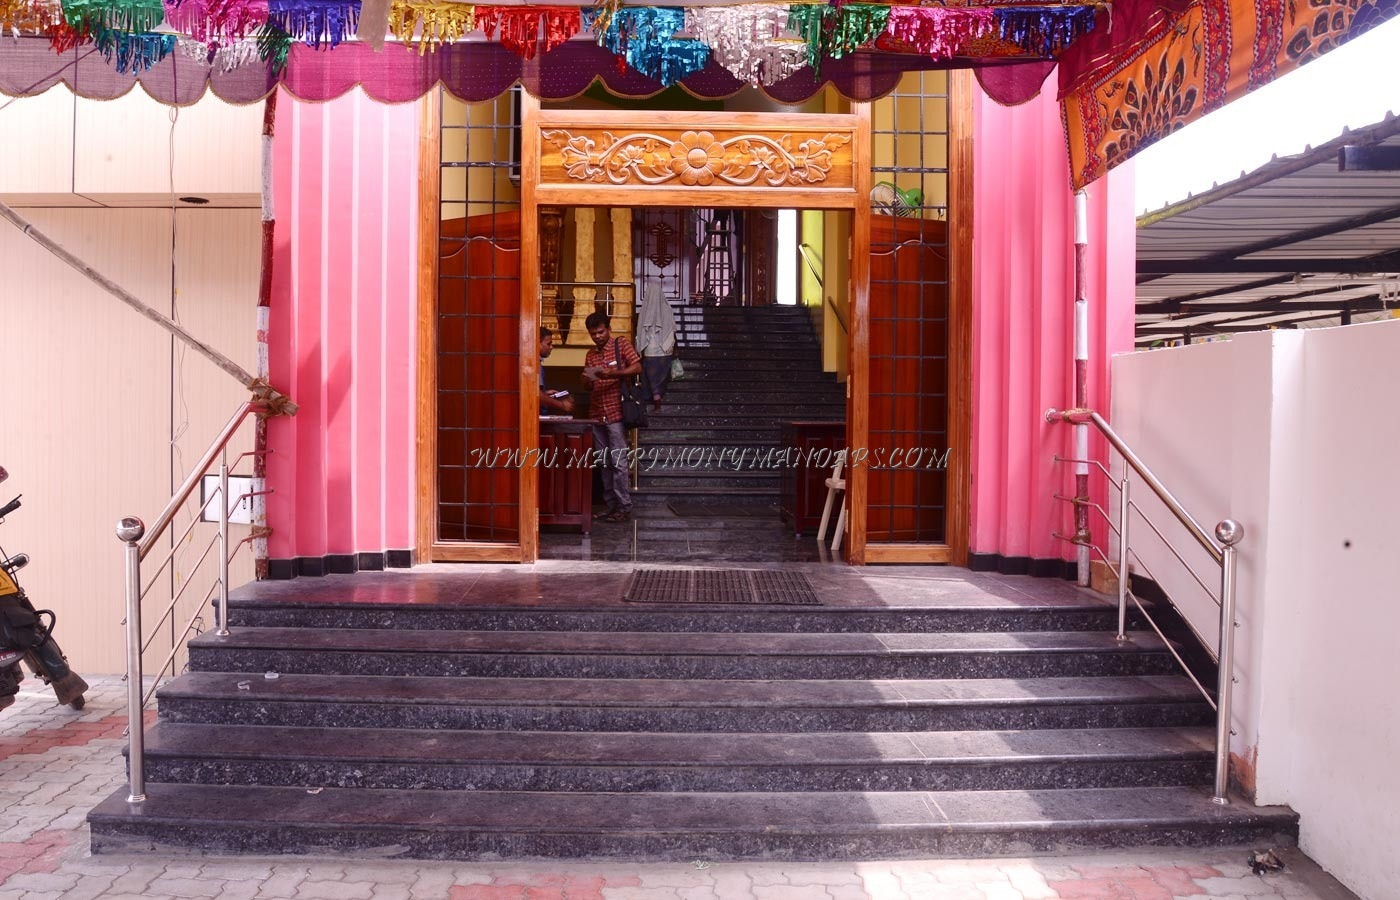 Find the availability of the Samyughta Mahal (A/C) in Avaniapuram, Madurai and avail special offers